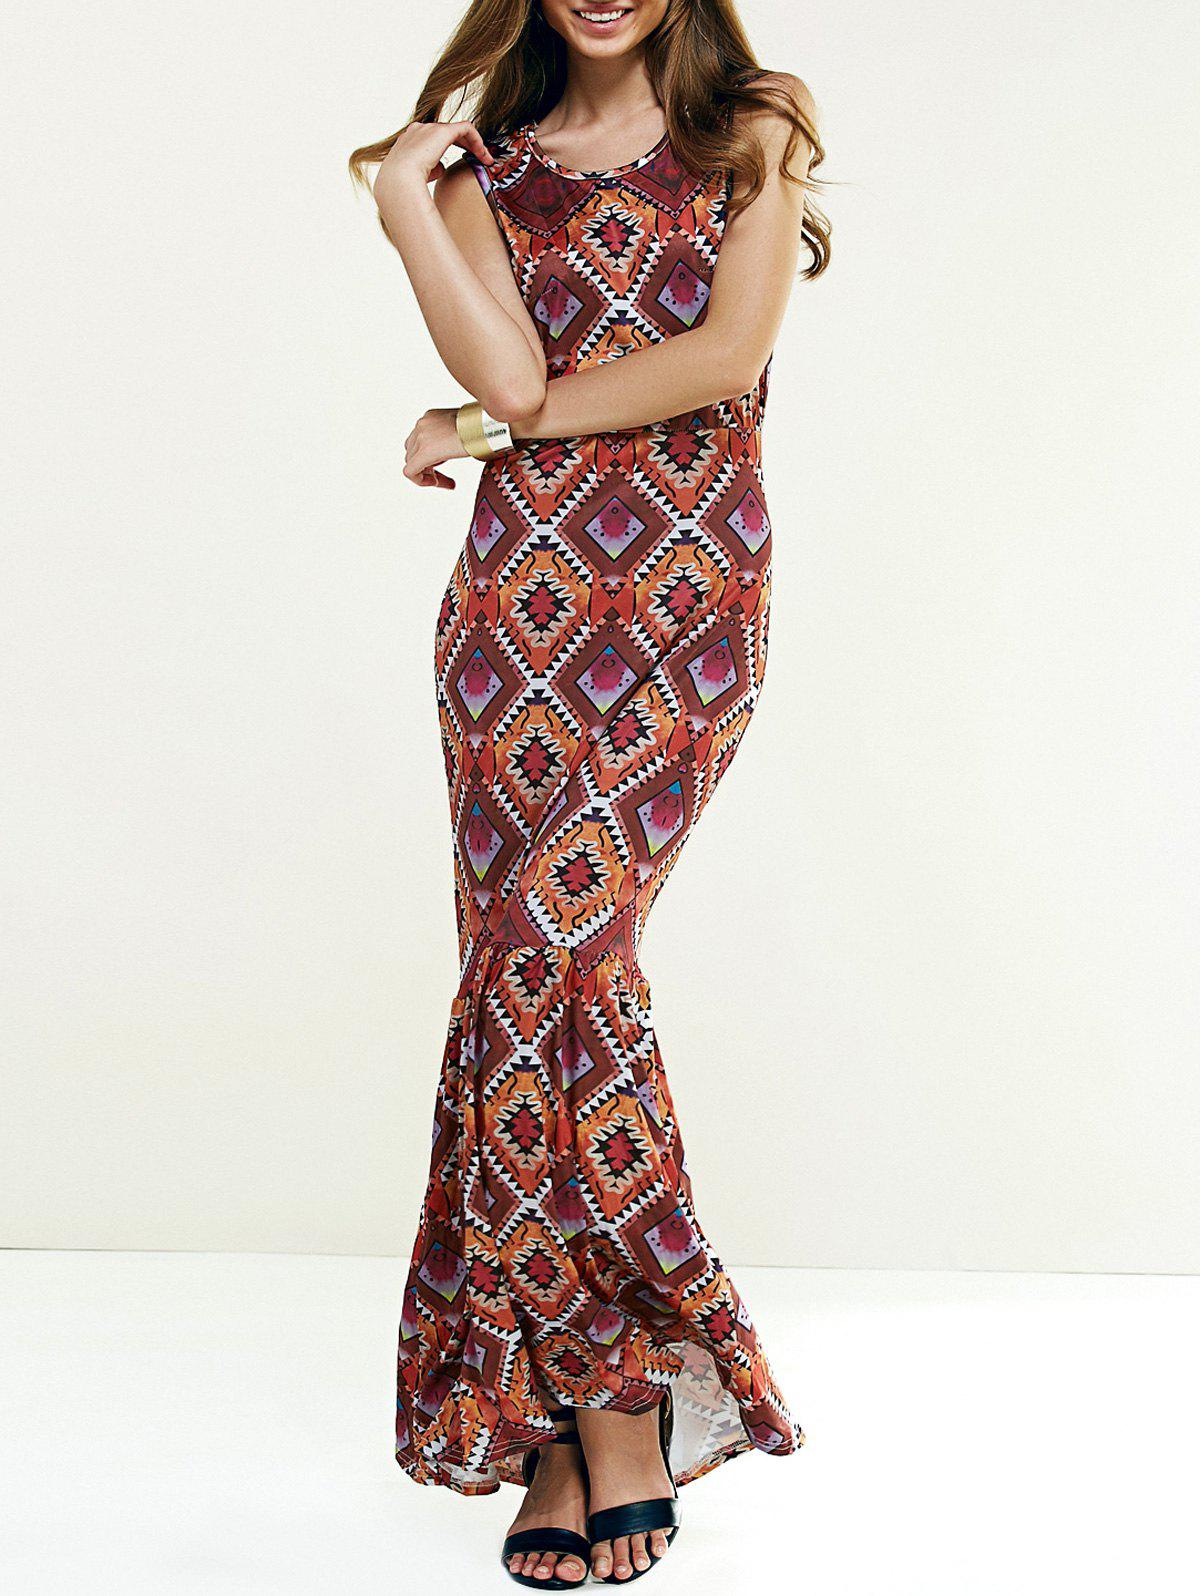 Argyle Print Fishtail Maxi Dress - S COLORMIX